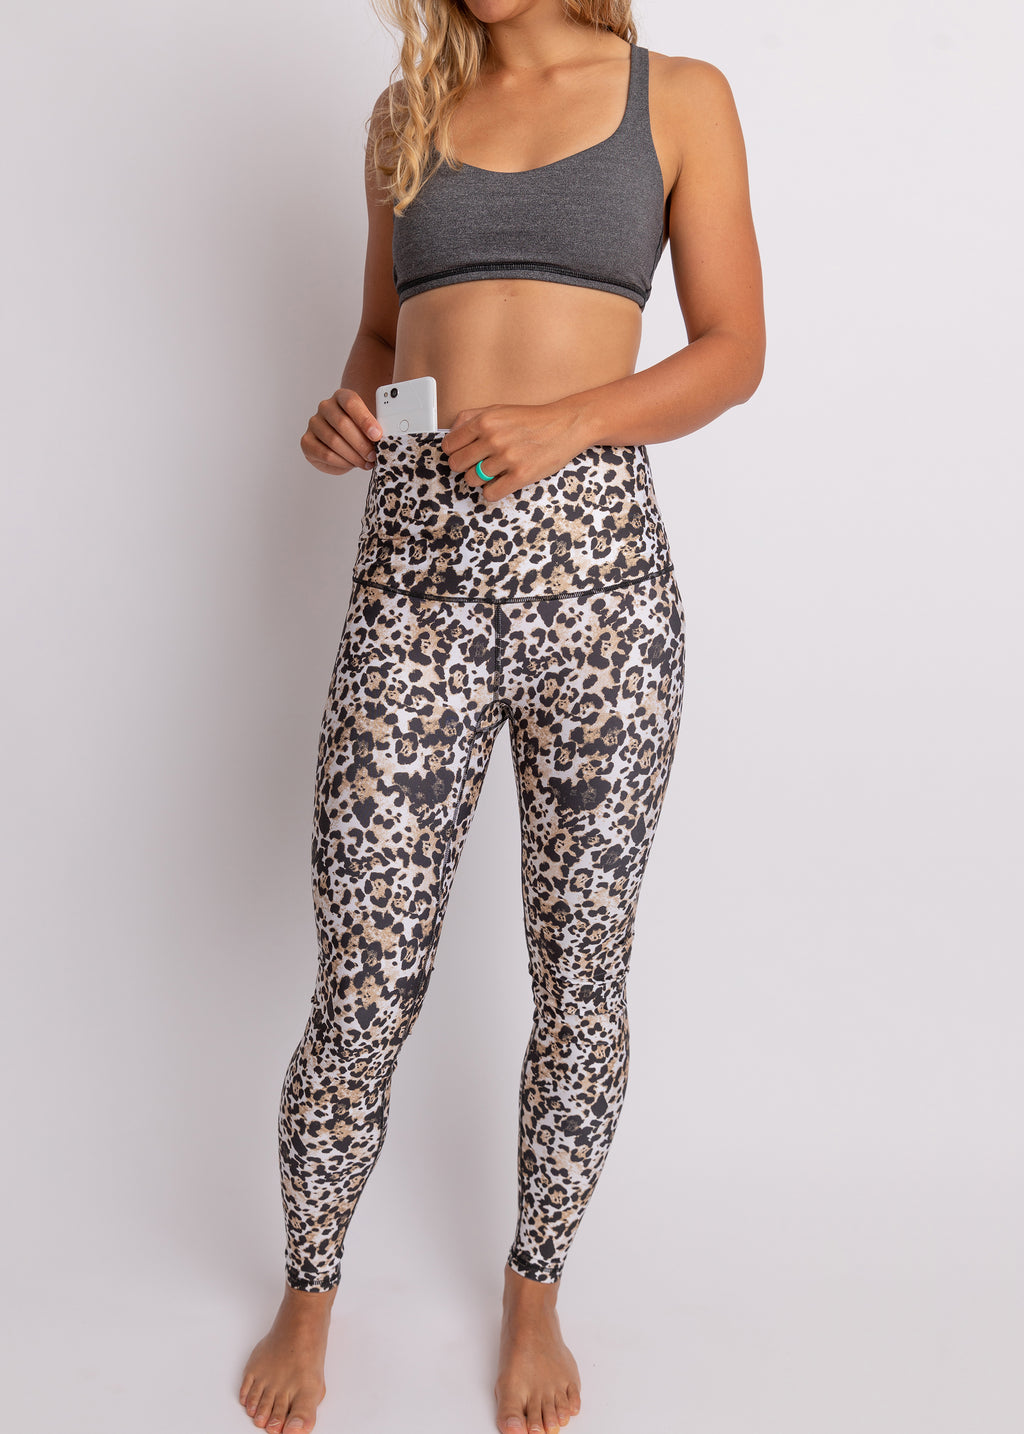 The Wild Cat Athletic Tights - pre-order by September 30th!